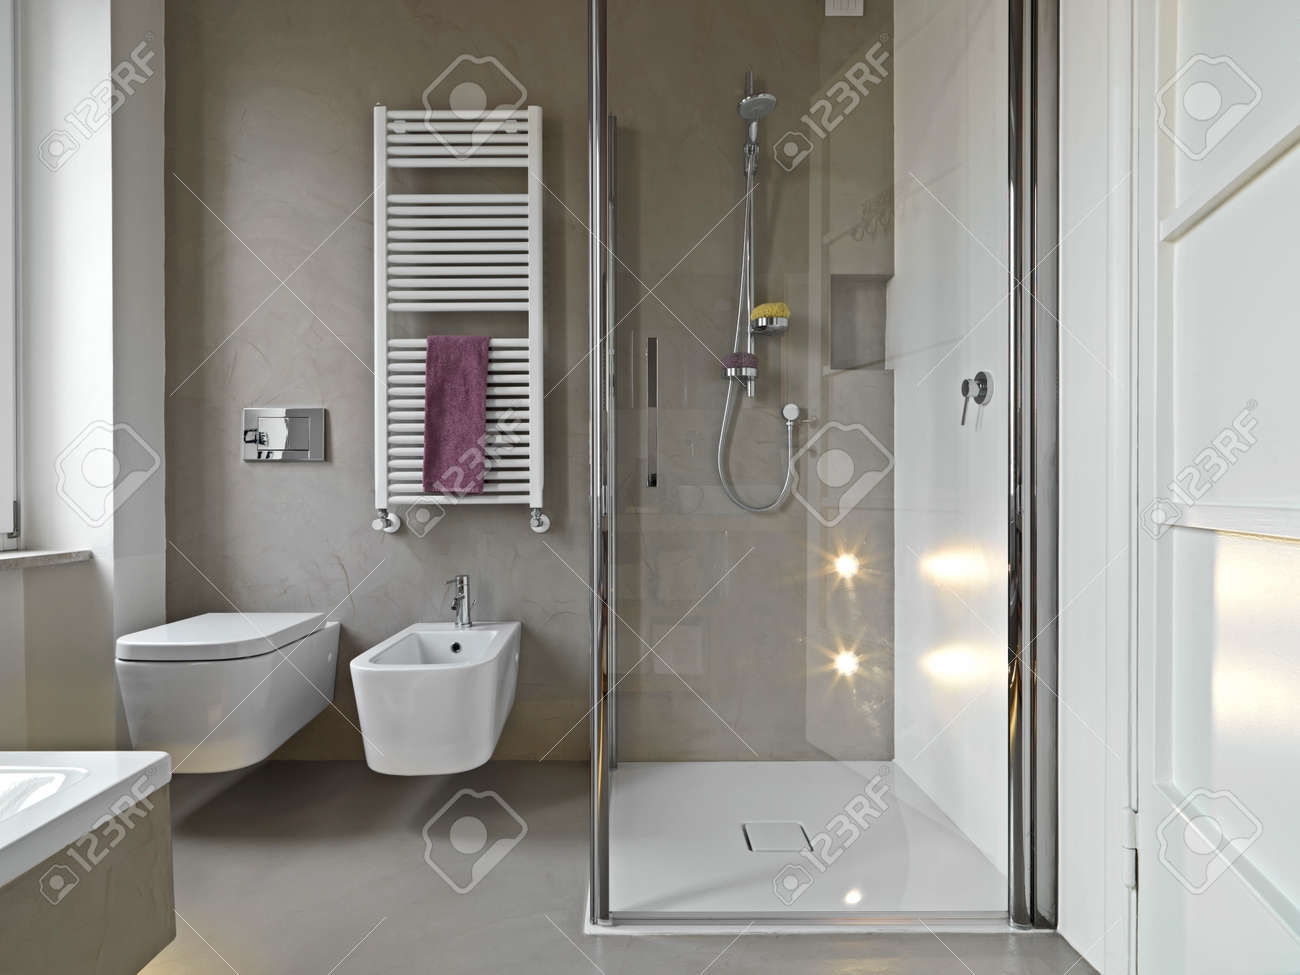 view of saanitayware and shower cubile in a modern bahtroom Standard-Bild - 30779321